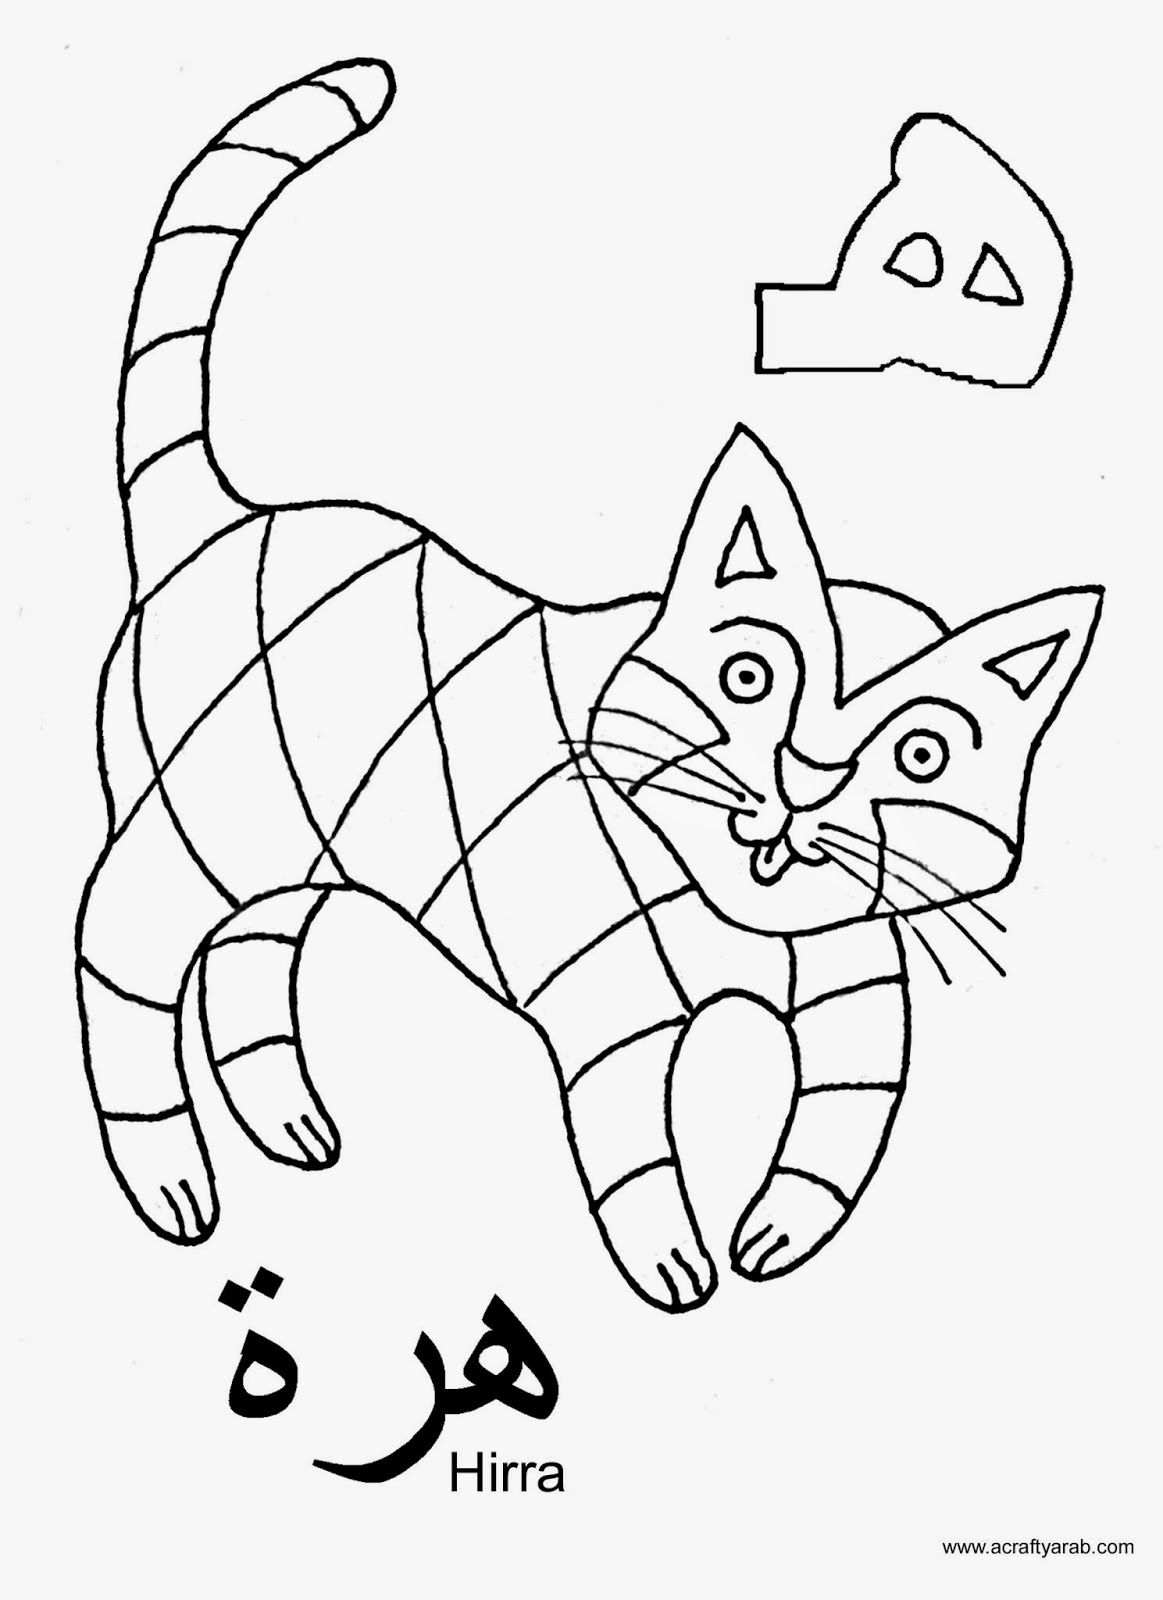 A Crafty Arab Hirra Cat Coloring Page